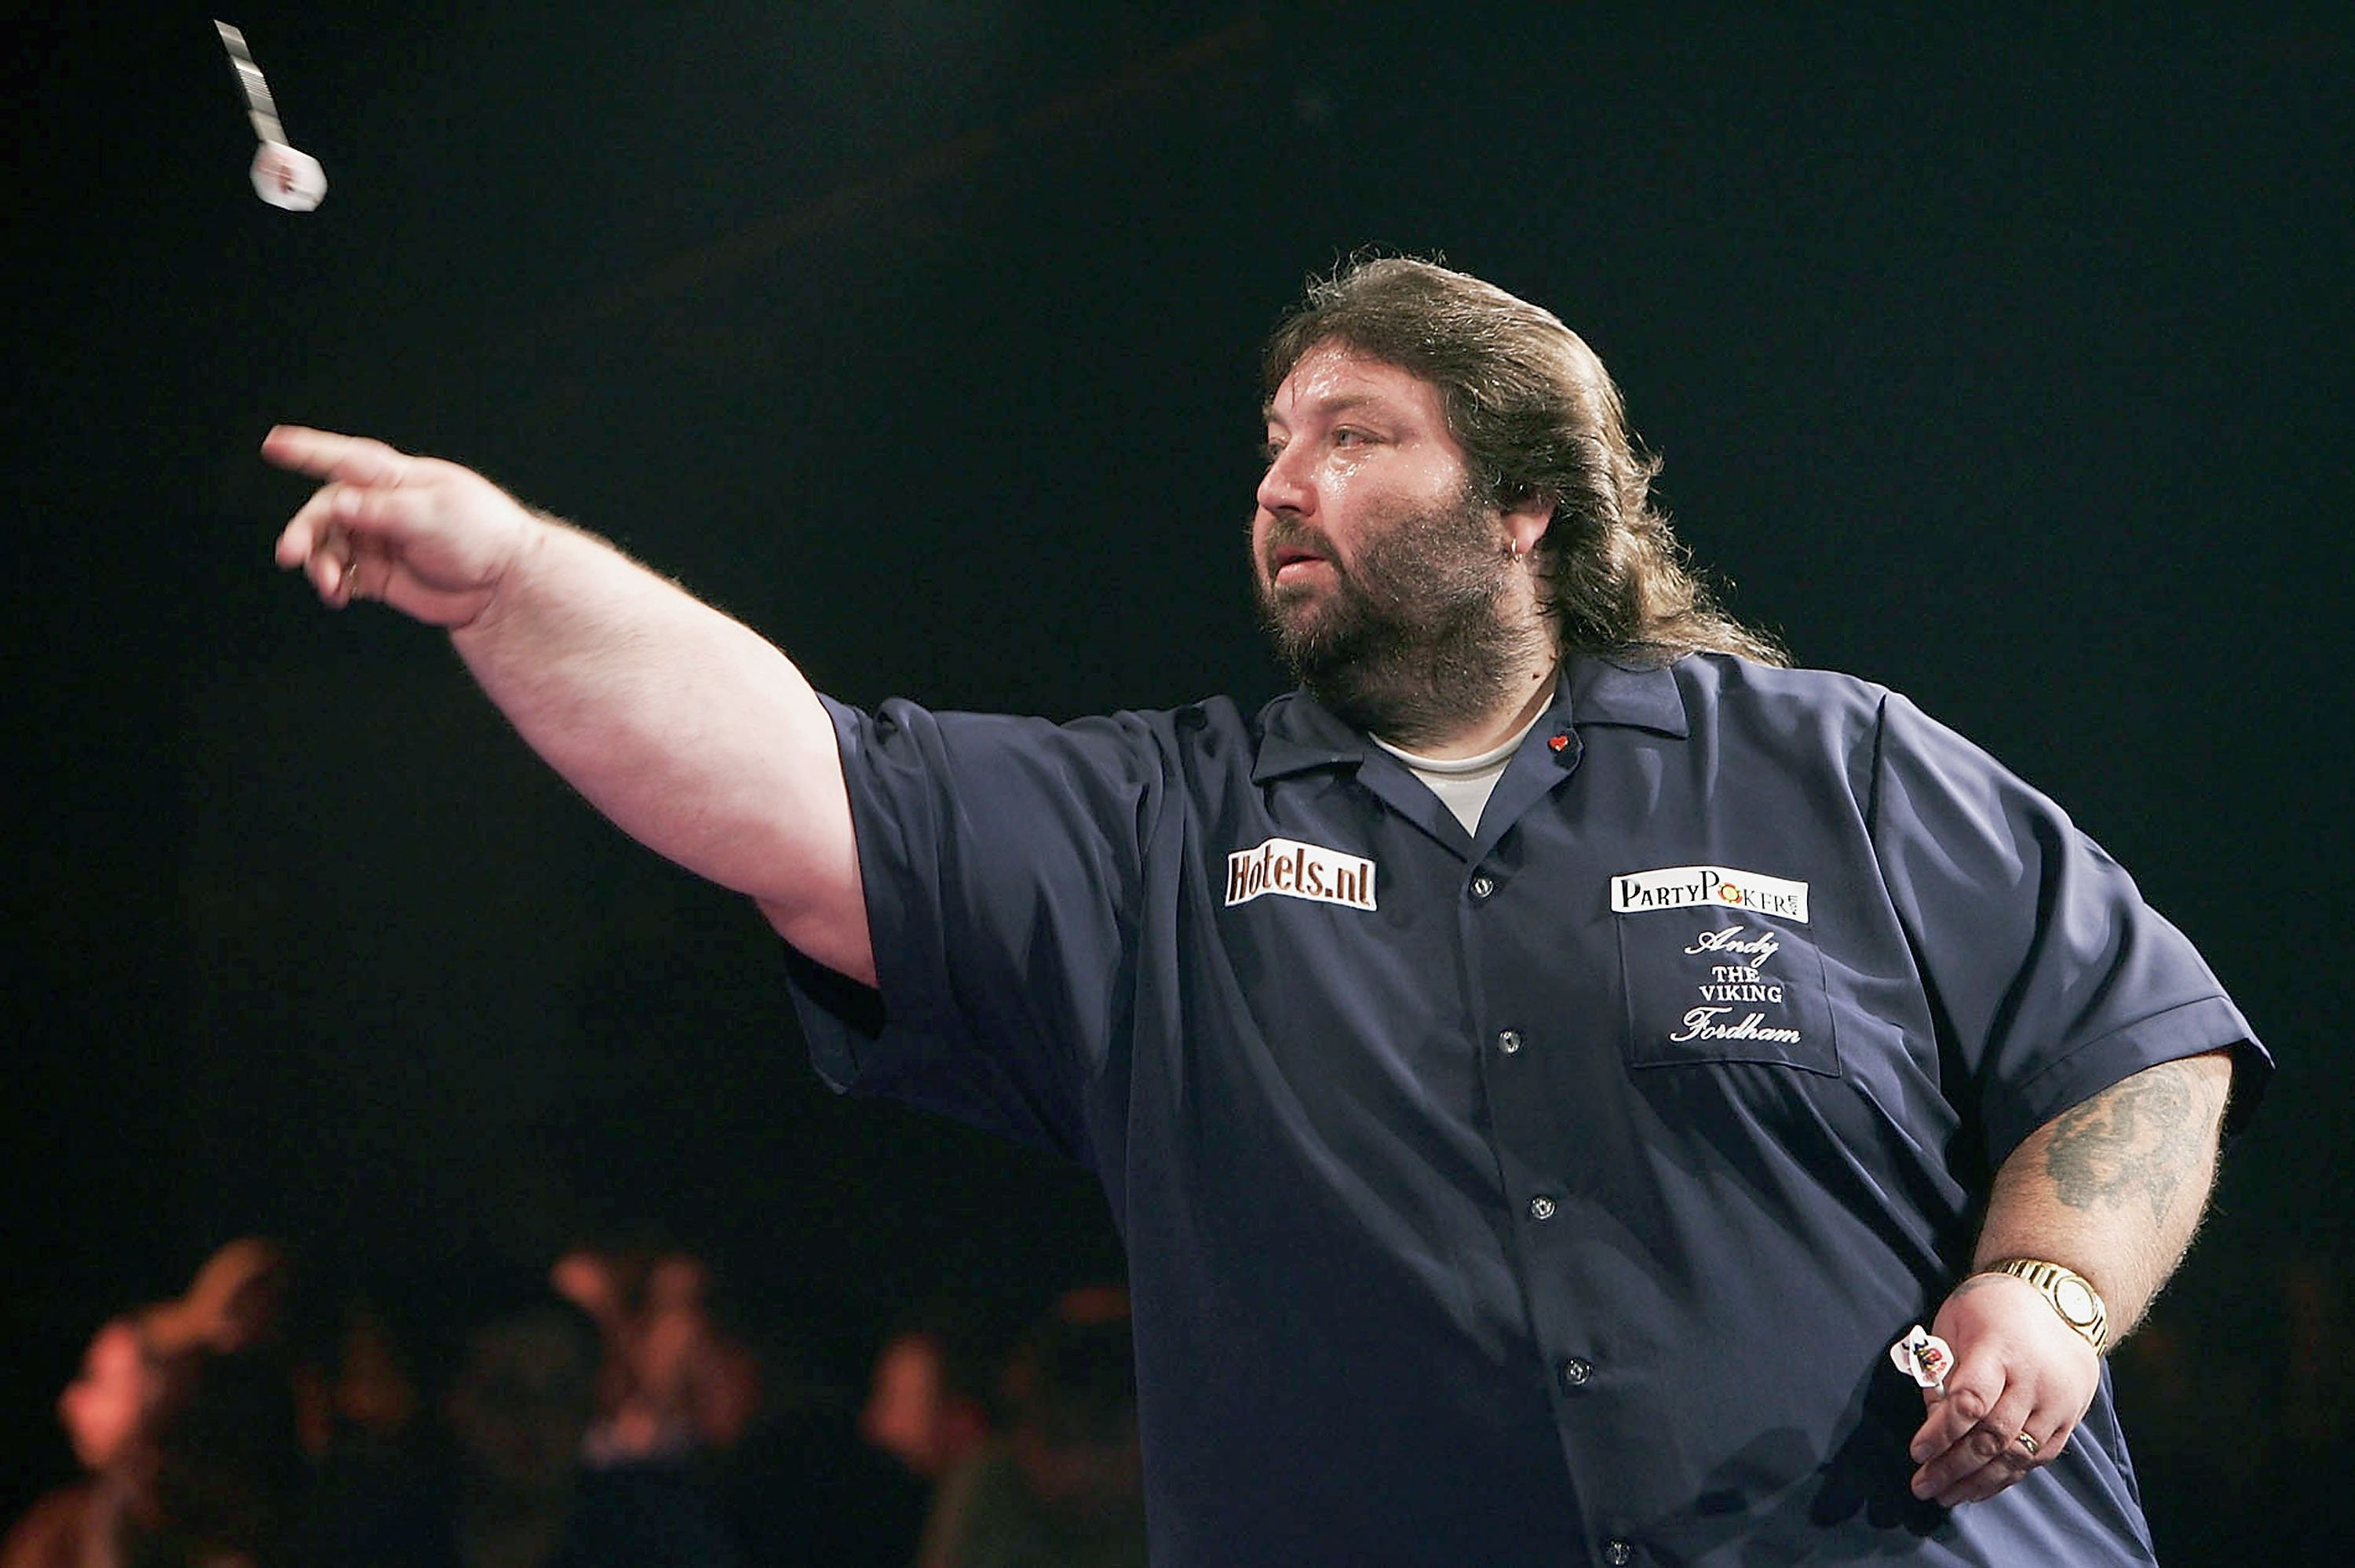 Andy Fordham in action during the Showdown match between Phil Taylor and Andy Fordham at The Circus Tavern on November 21, 2004 in Purfleet, England.   Source: Getty Images